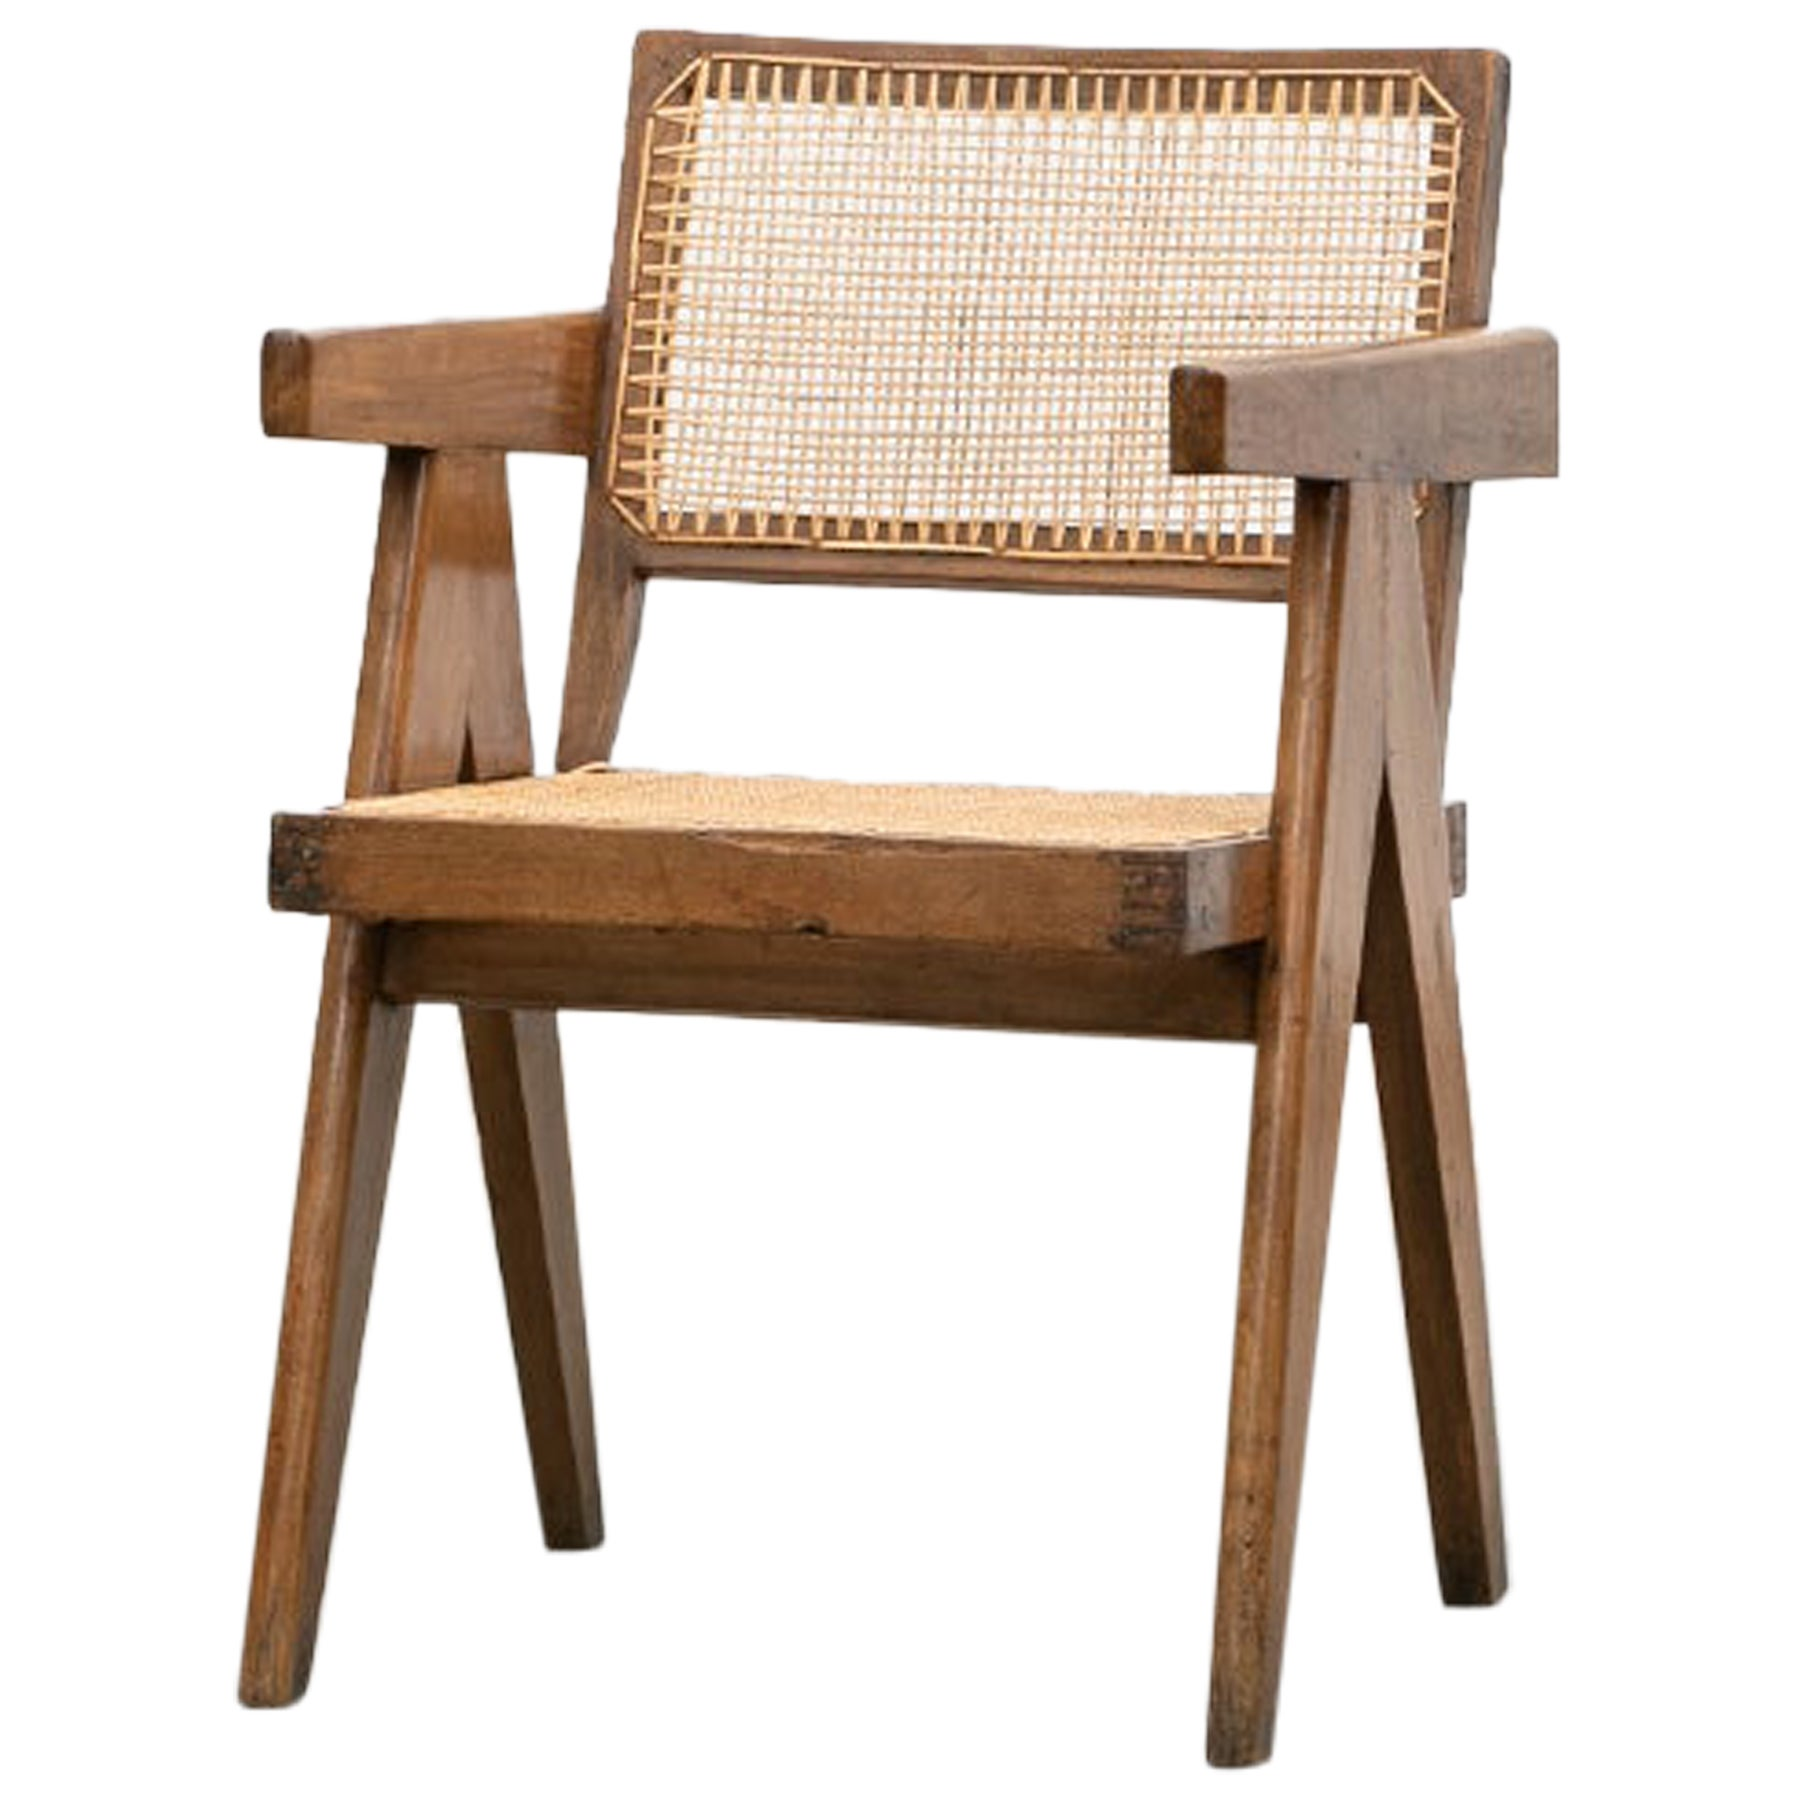 Single 1950s Brown Wooden Teak and Cane Chair by Pierre Jeanneret